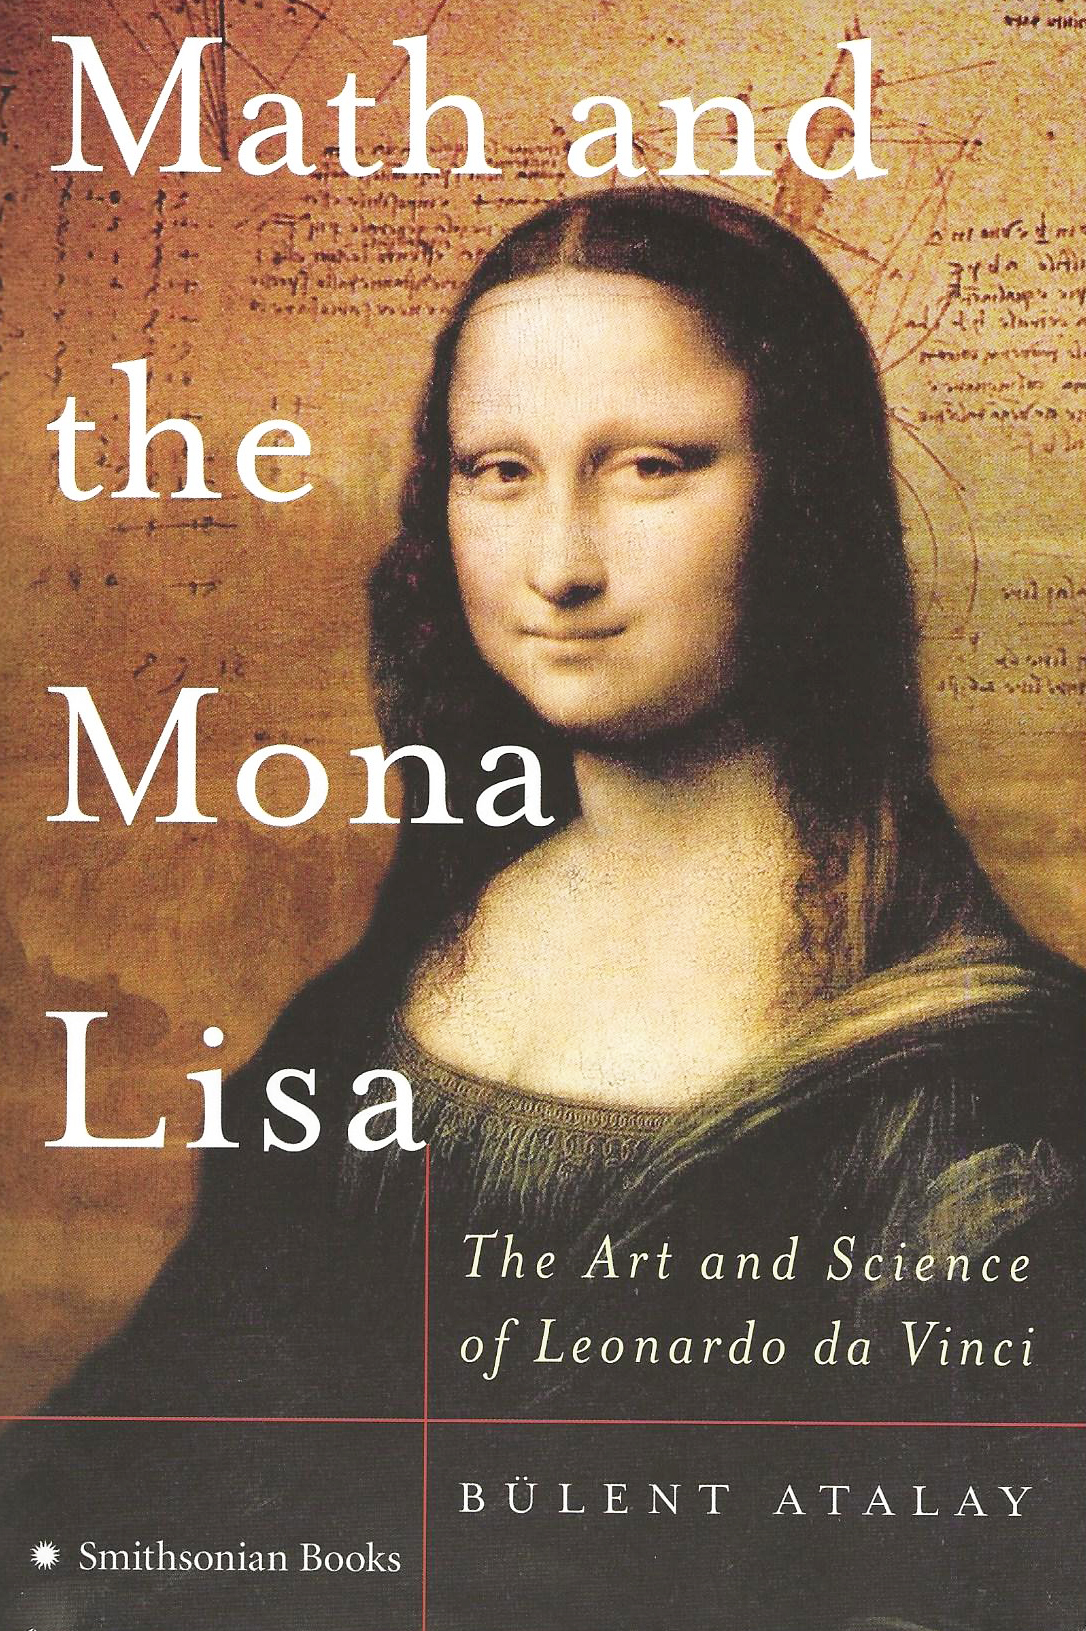 Cover, Atalay, Bulent. Math and the Mona Lisa: The Art and Science of Leonardo da Vinci. New York: HarperCollins, 2006.